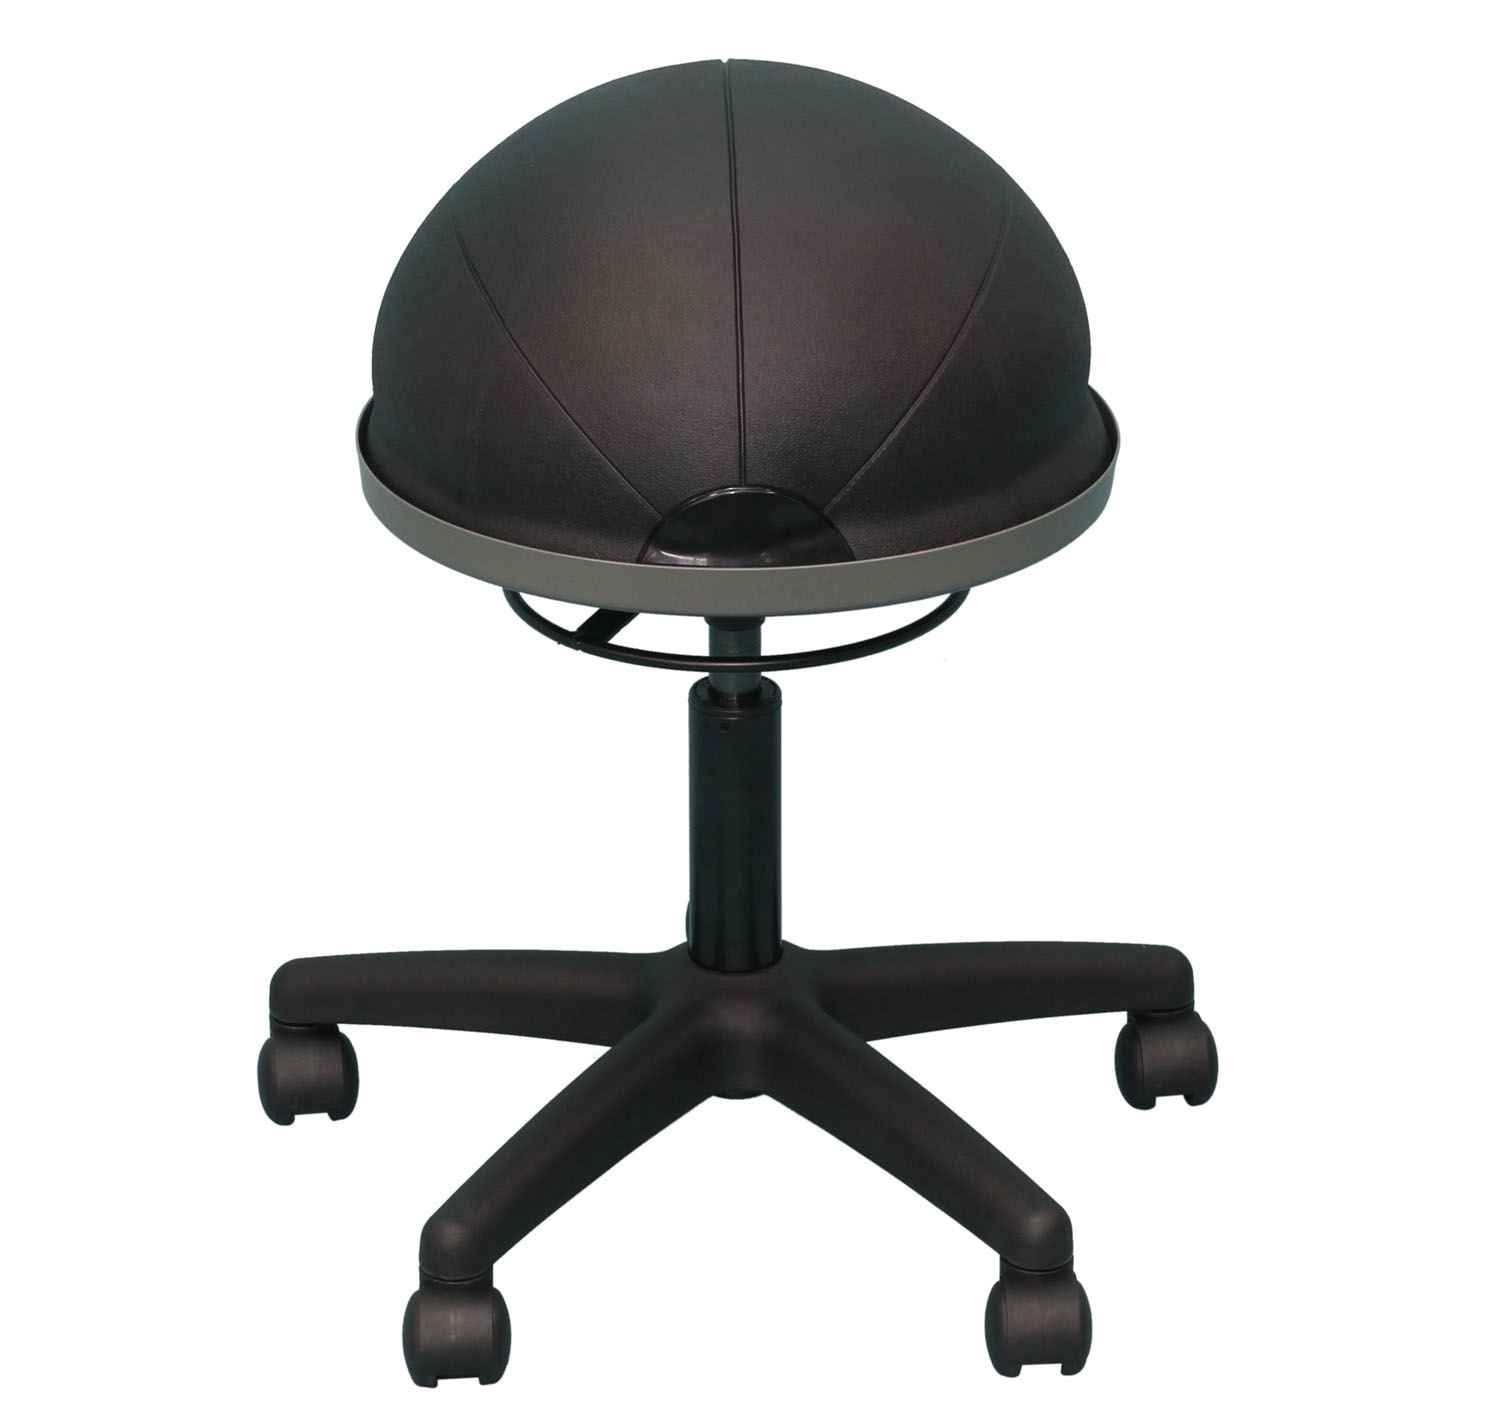 Yoga Ball Desk Chair Exercise Ball Chair Office Furniture